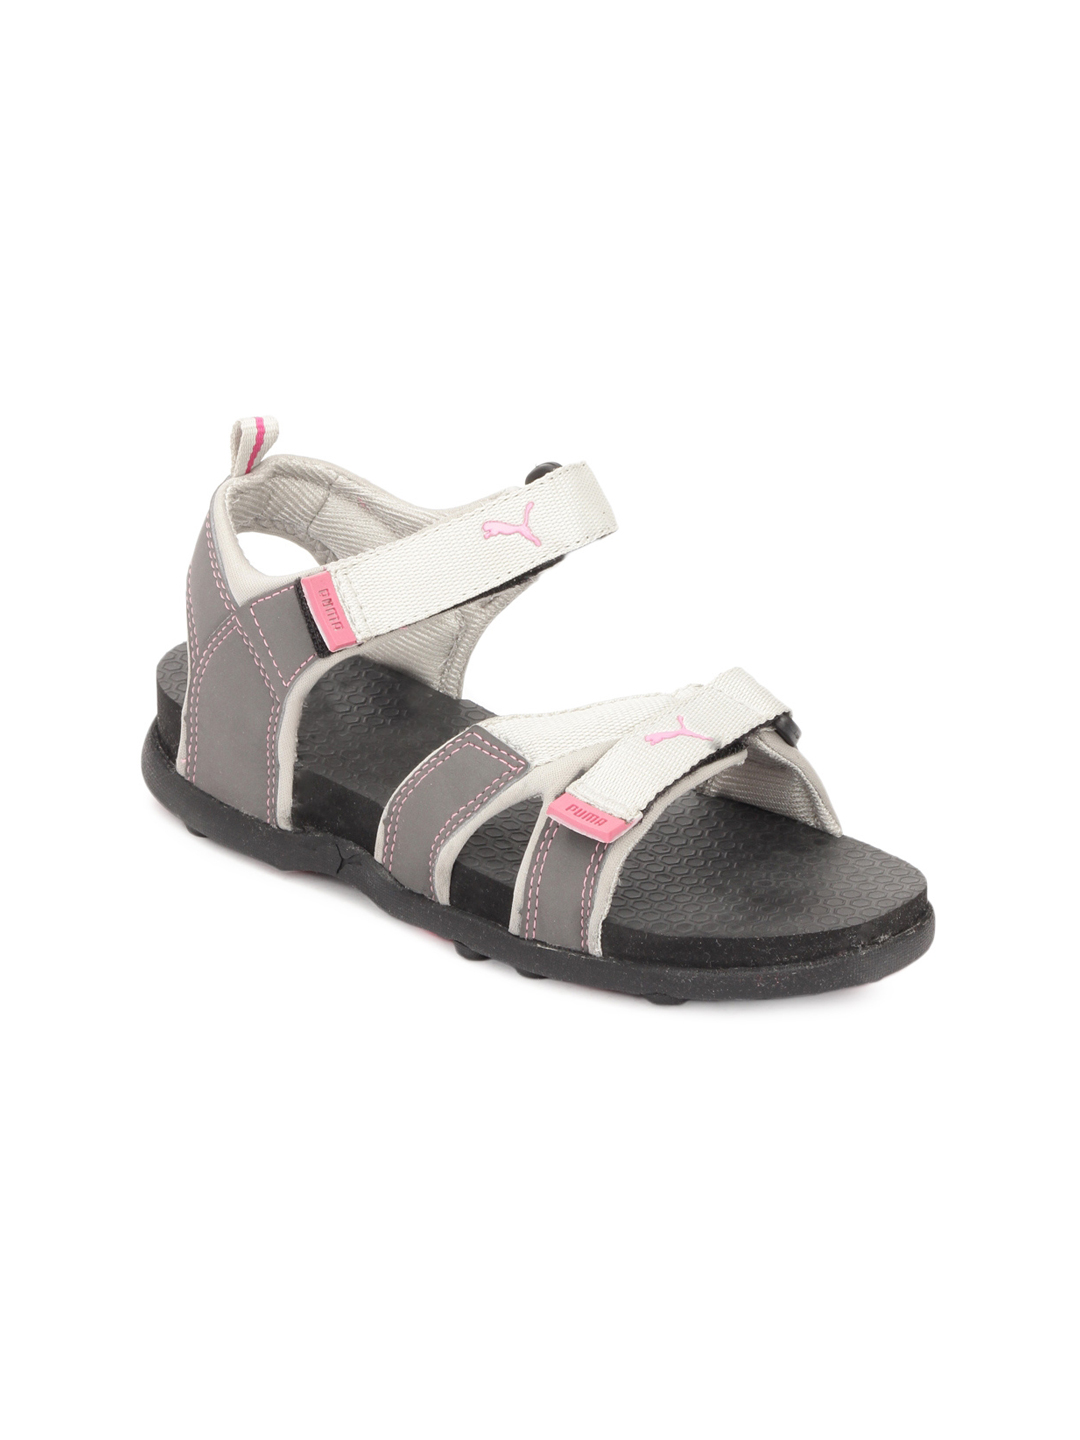 Puma Women Grey Techno Sandals